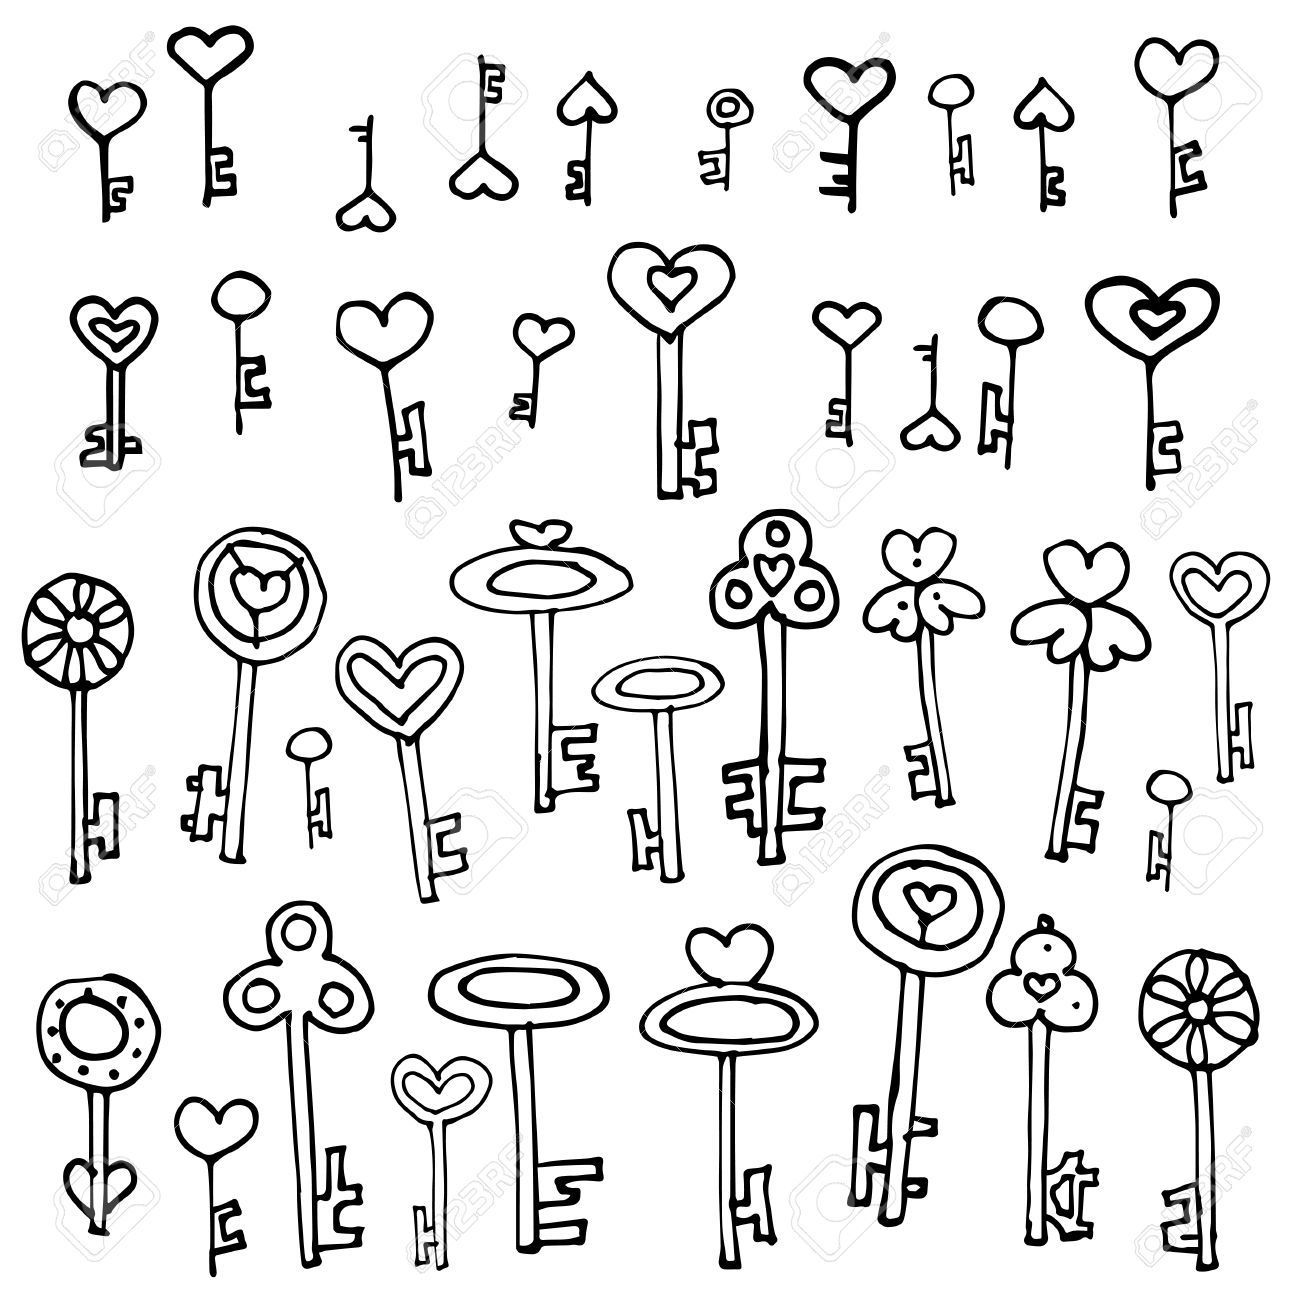 Image Result For Easy Doodles For Education Religion